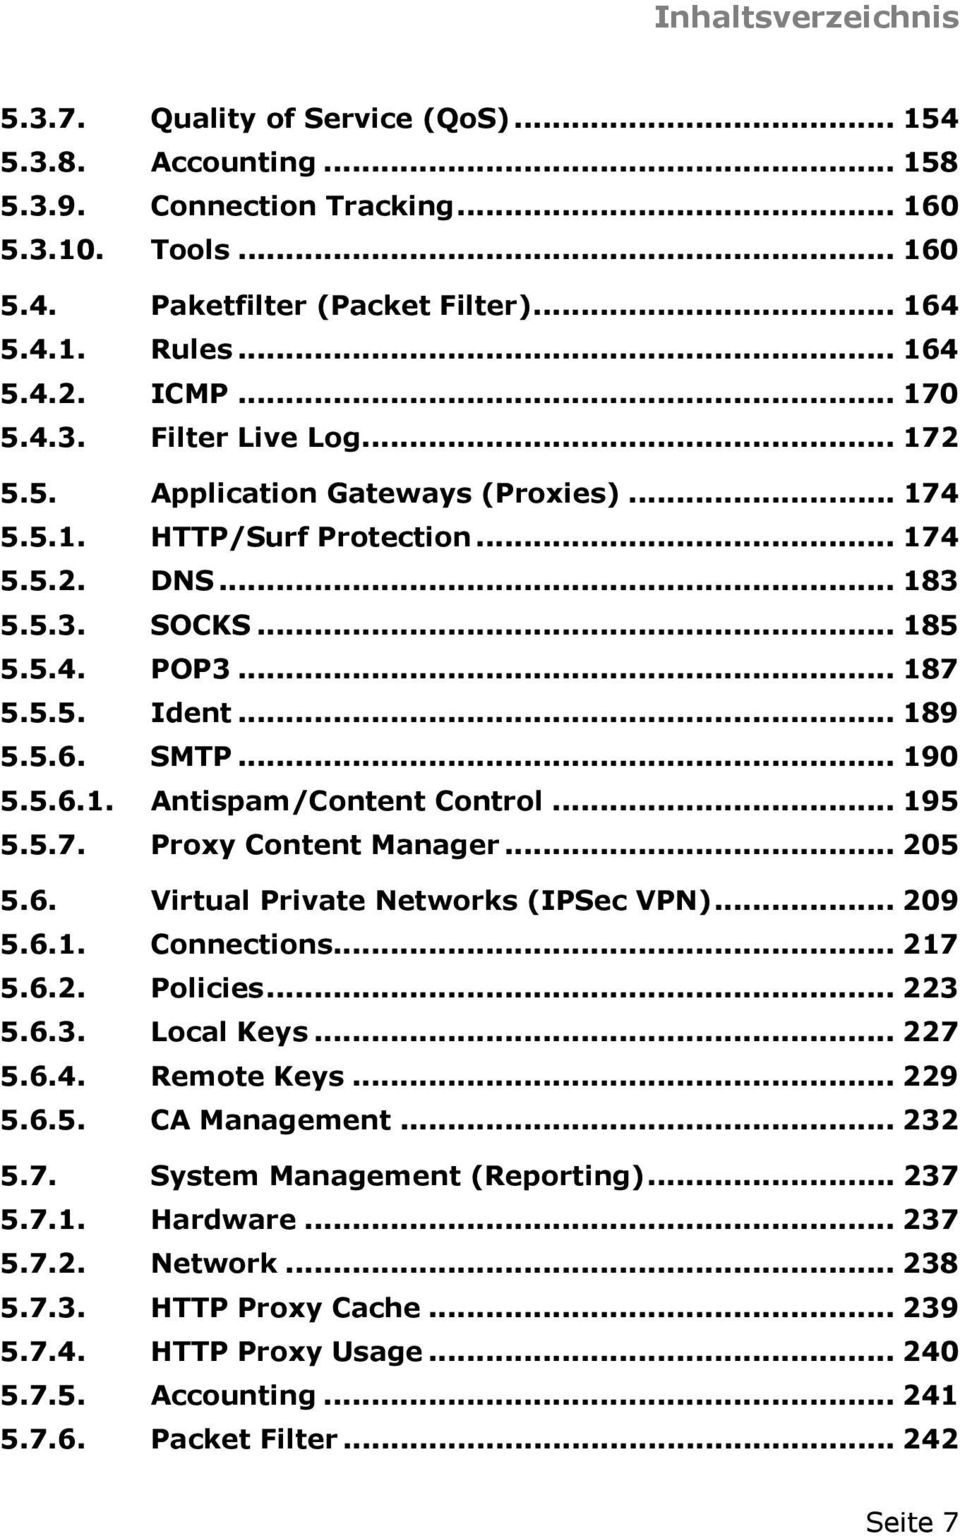 5.6. SMTP... 190 5.5.6.1. Antispam/Content Control... 195 5.5.7. Proxy Content Manager... 205 5.6. Virtual Private Networks (IPSec VPN)... 209 5.6.1. Connections... 217 5.6.2. Policies... 223